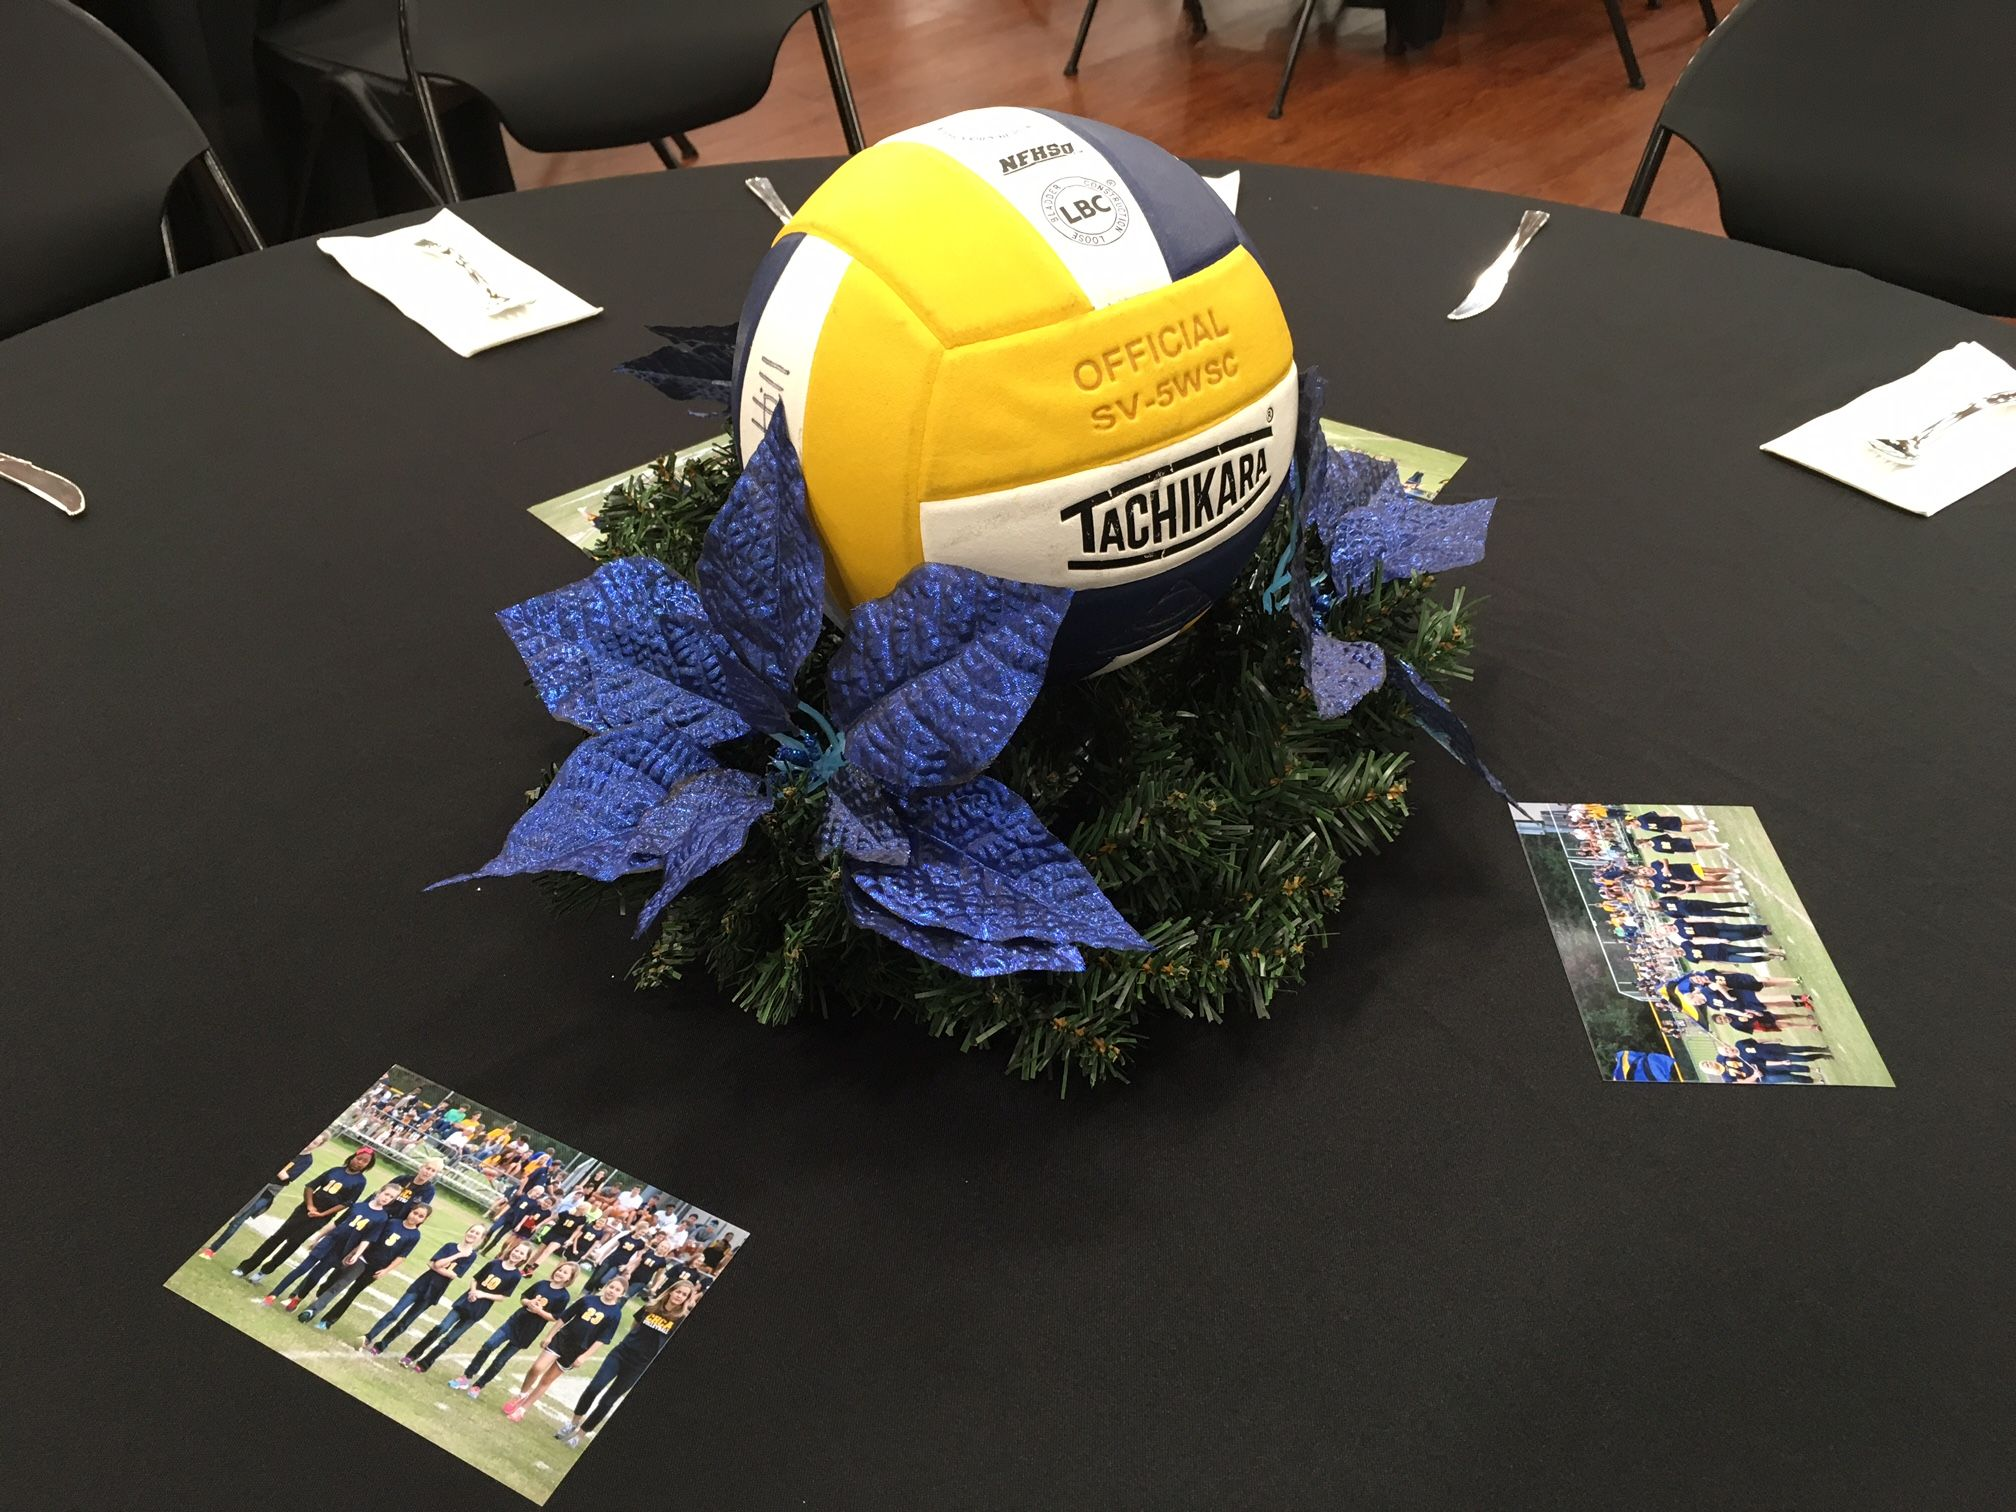 Volleyball Banquet Centerpiece Christmas Theme Banquet Centerpieces Christmas Themes Graduation Party